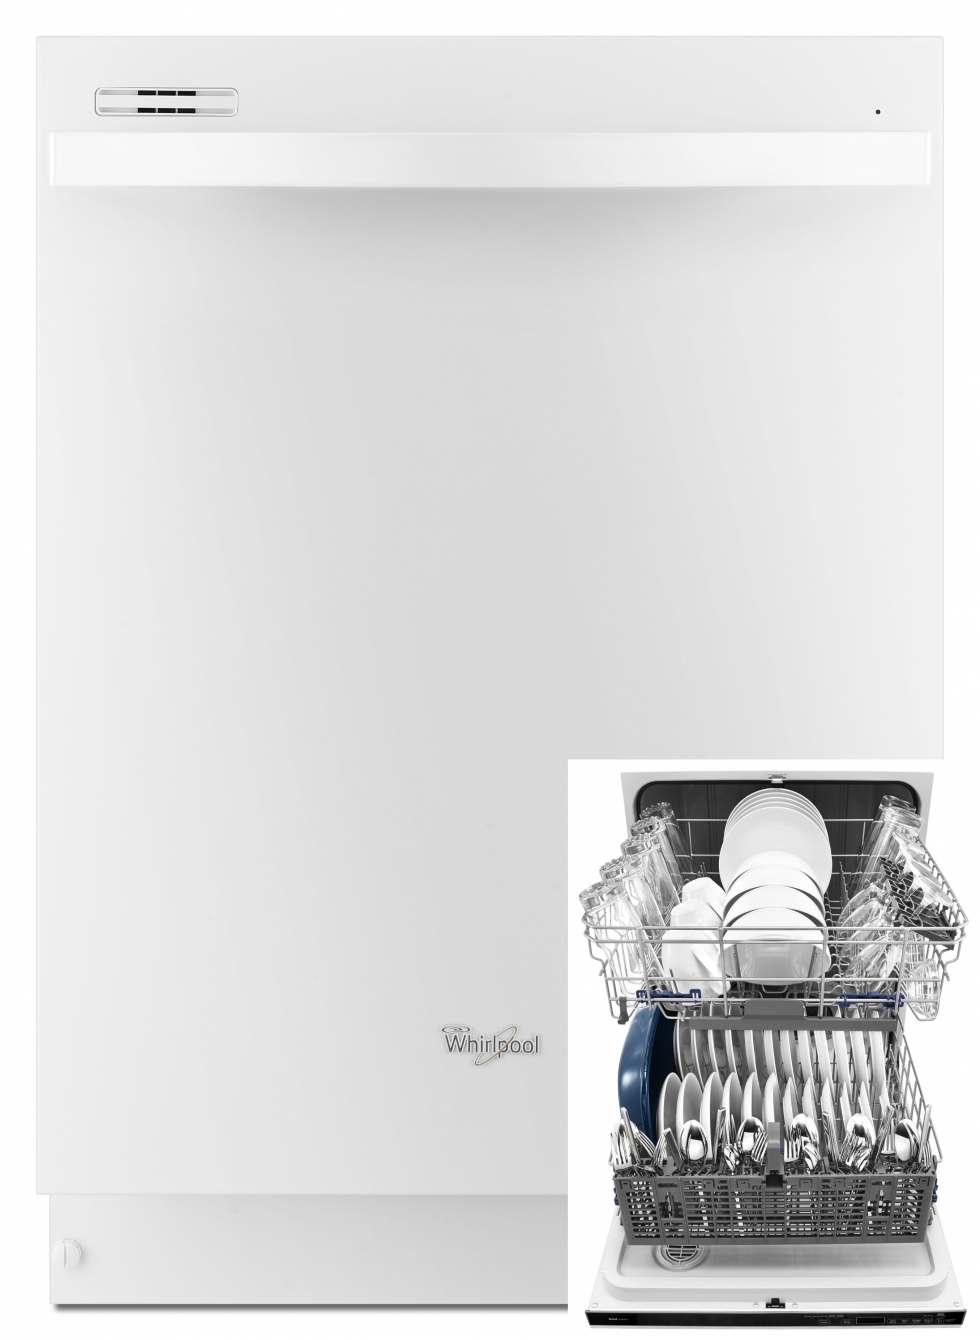 Whirlpool Gold Dishwasher White